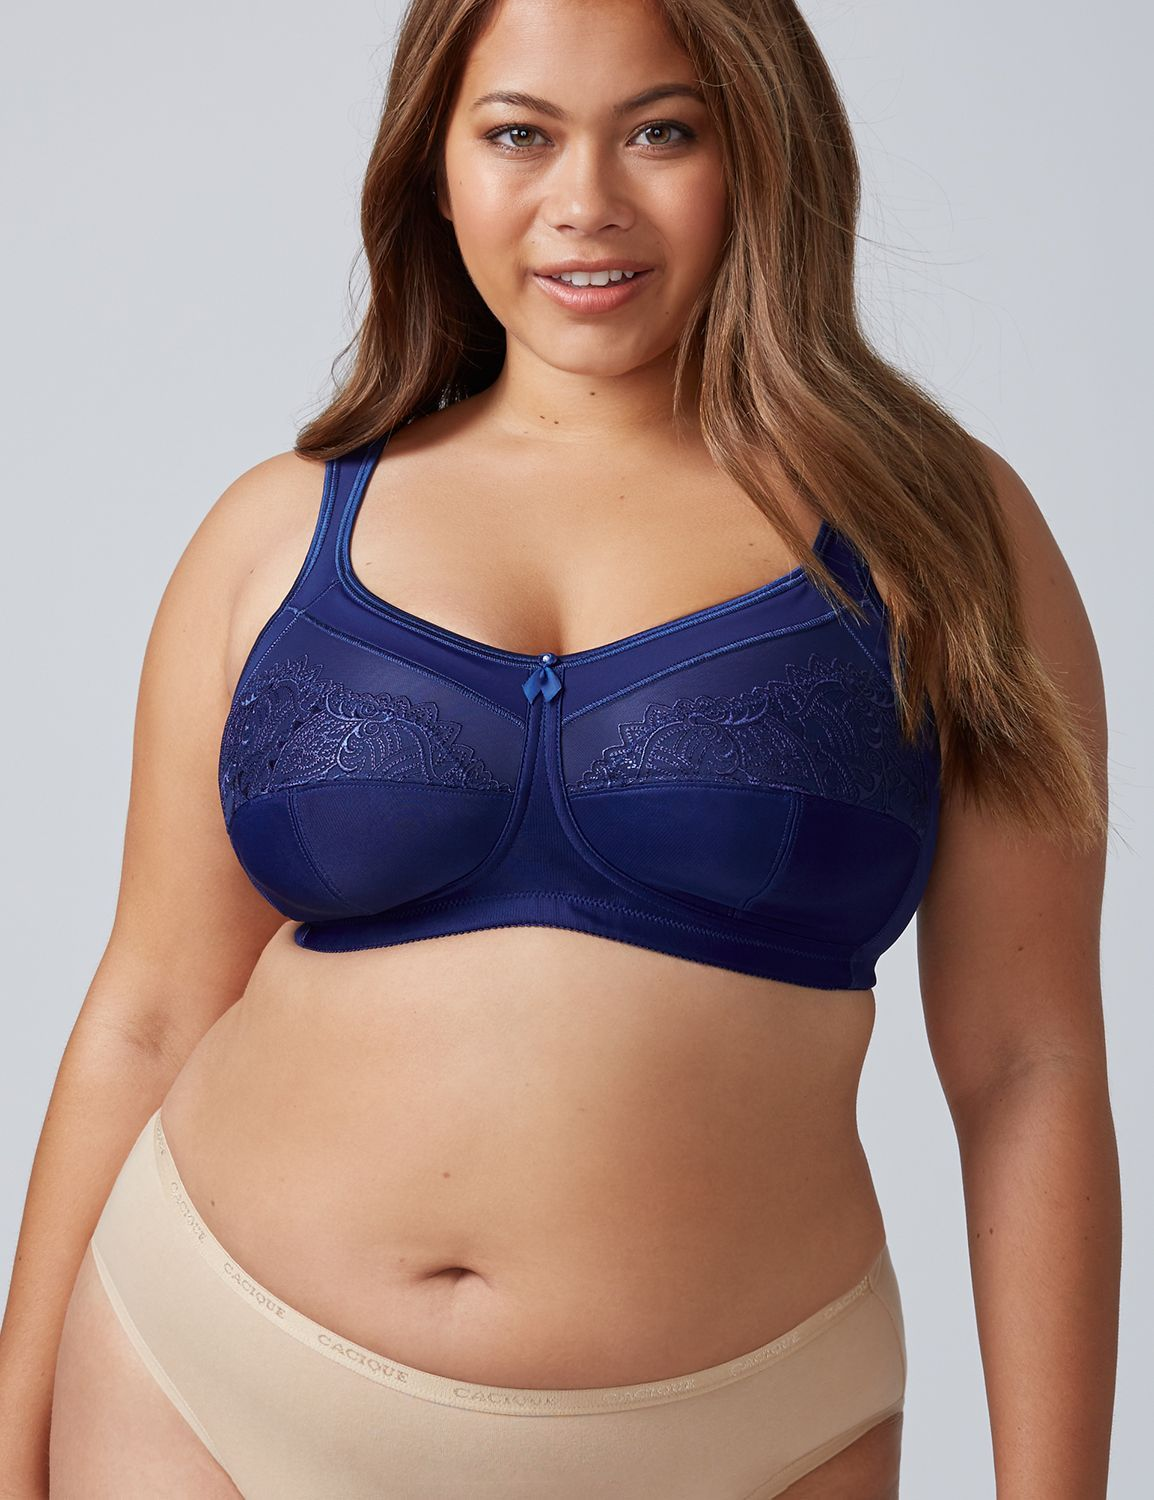 52b0c520be Isadora Wire-Free Post-Surgical Bra by Amoena